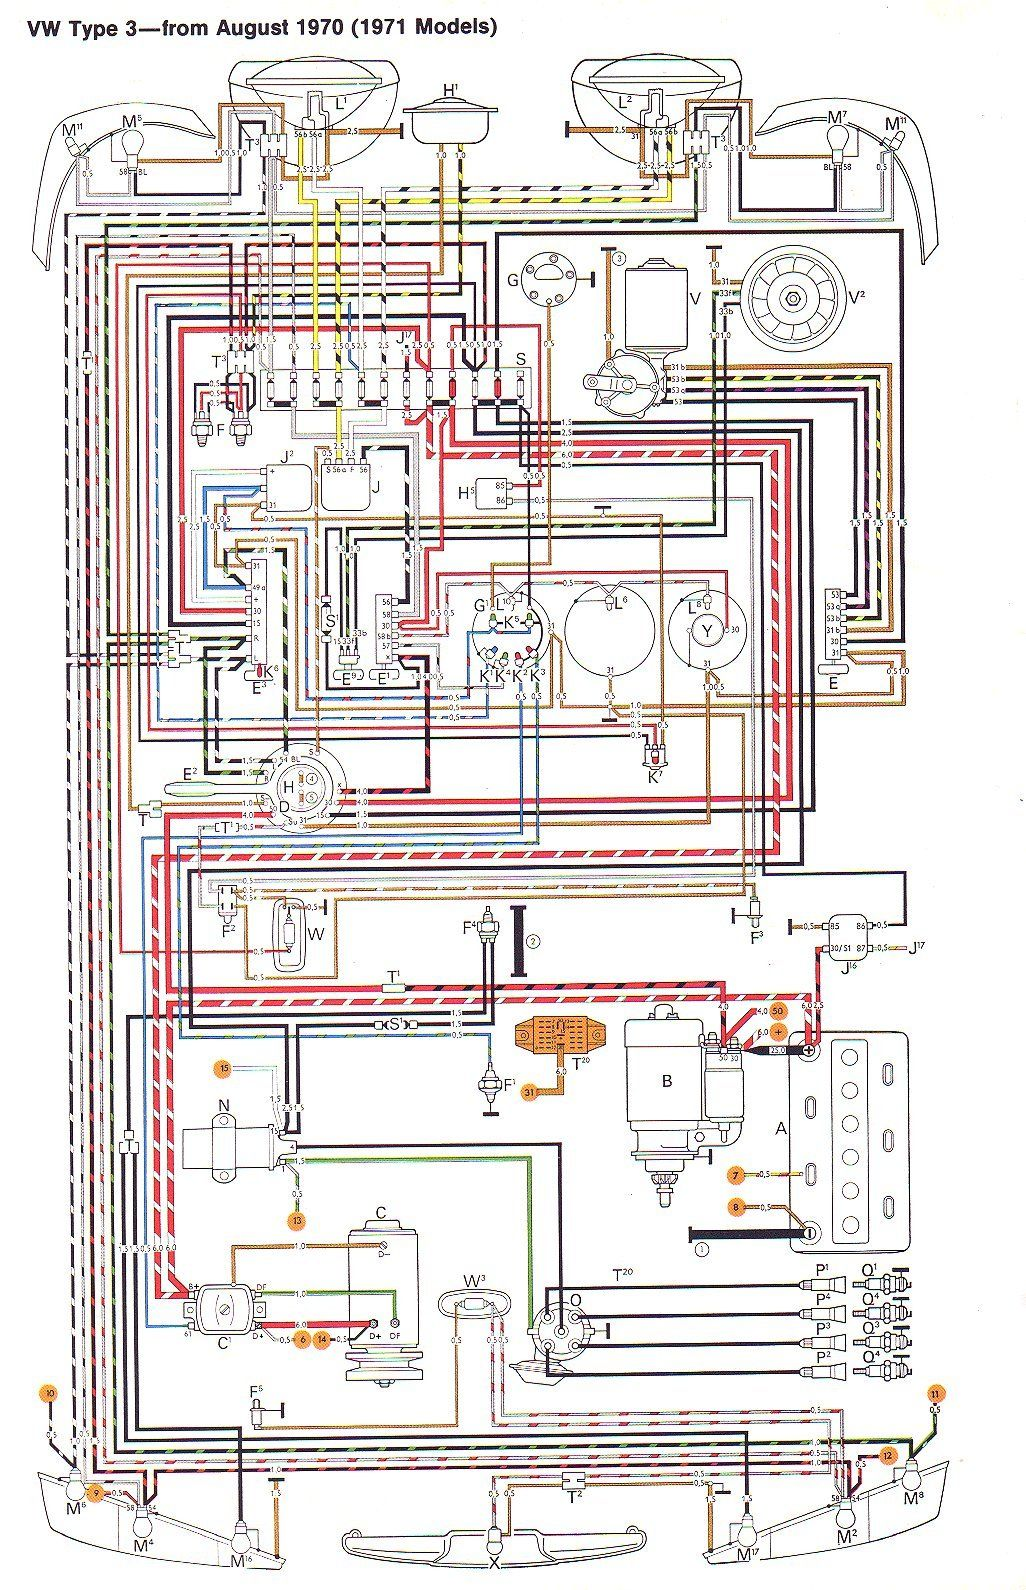 e0db58370f79a63d02d45f00cf63f44a 71 vw t3 wiring diagram car projects pinterest volkswagen 1971 vw bus wiring diagram at honlapkeszites.co